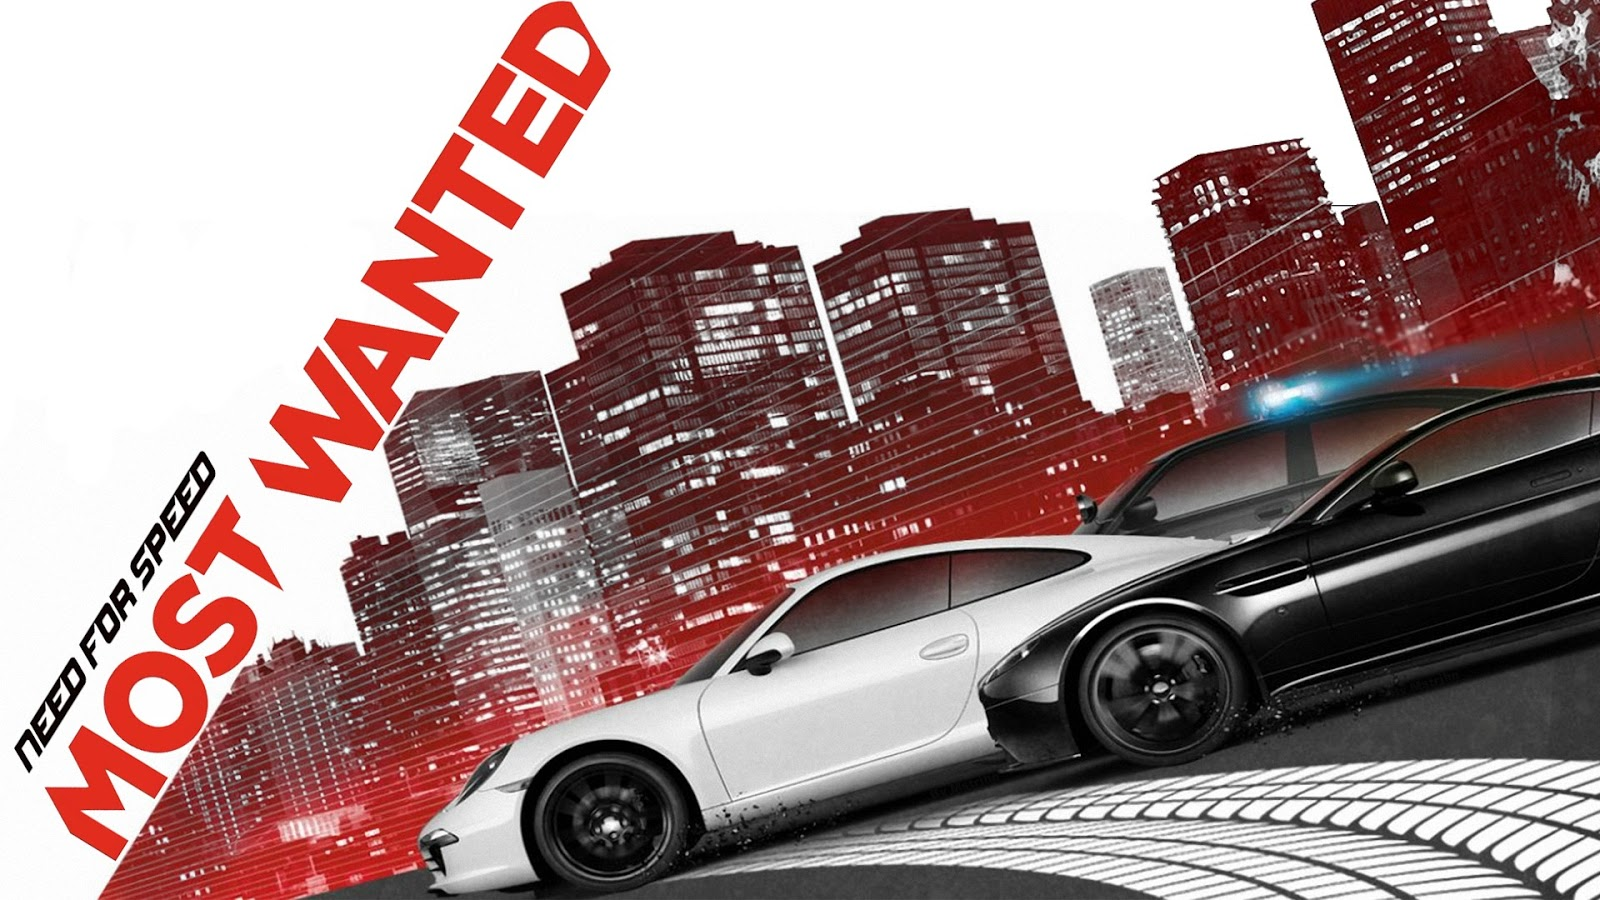 Free Download Need For Speed Most Wanted 2012 Wallpapers Hd